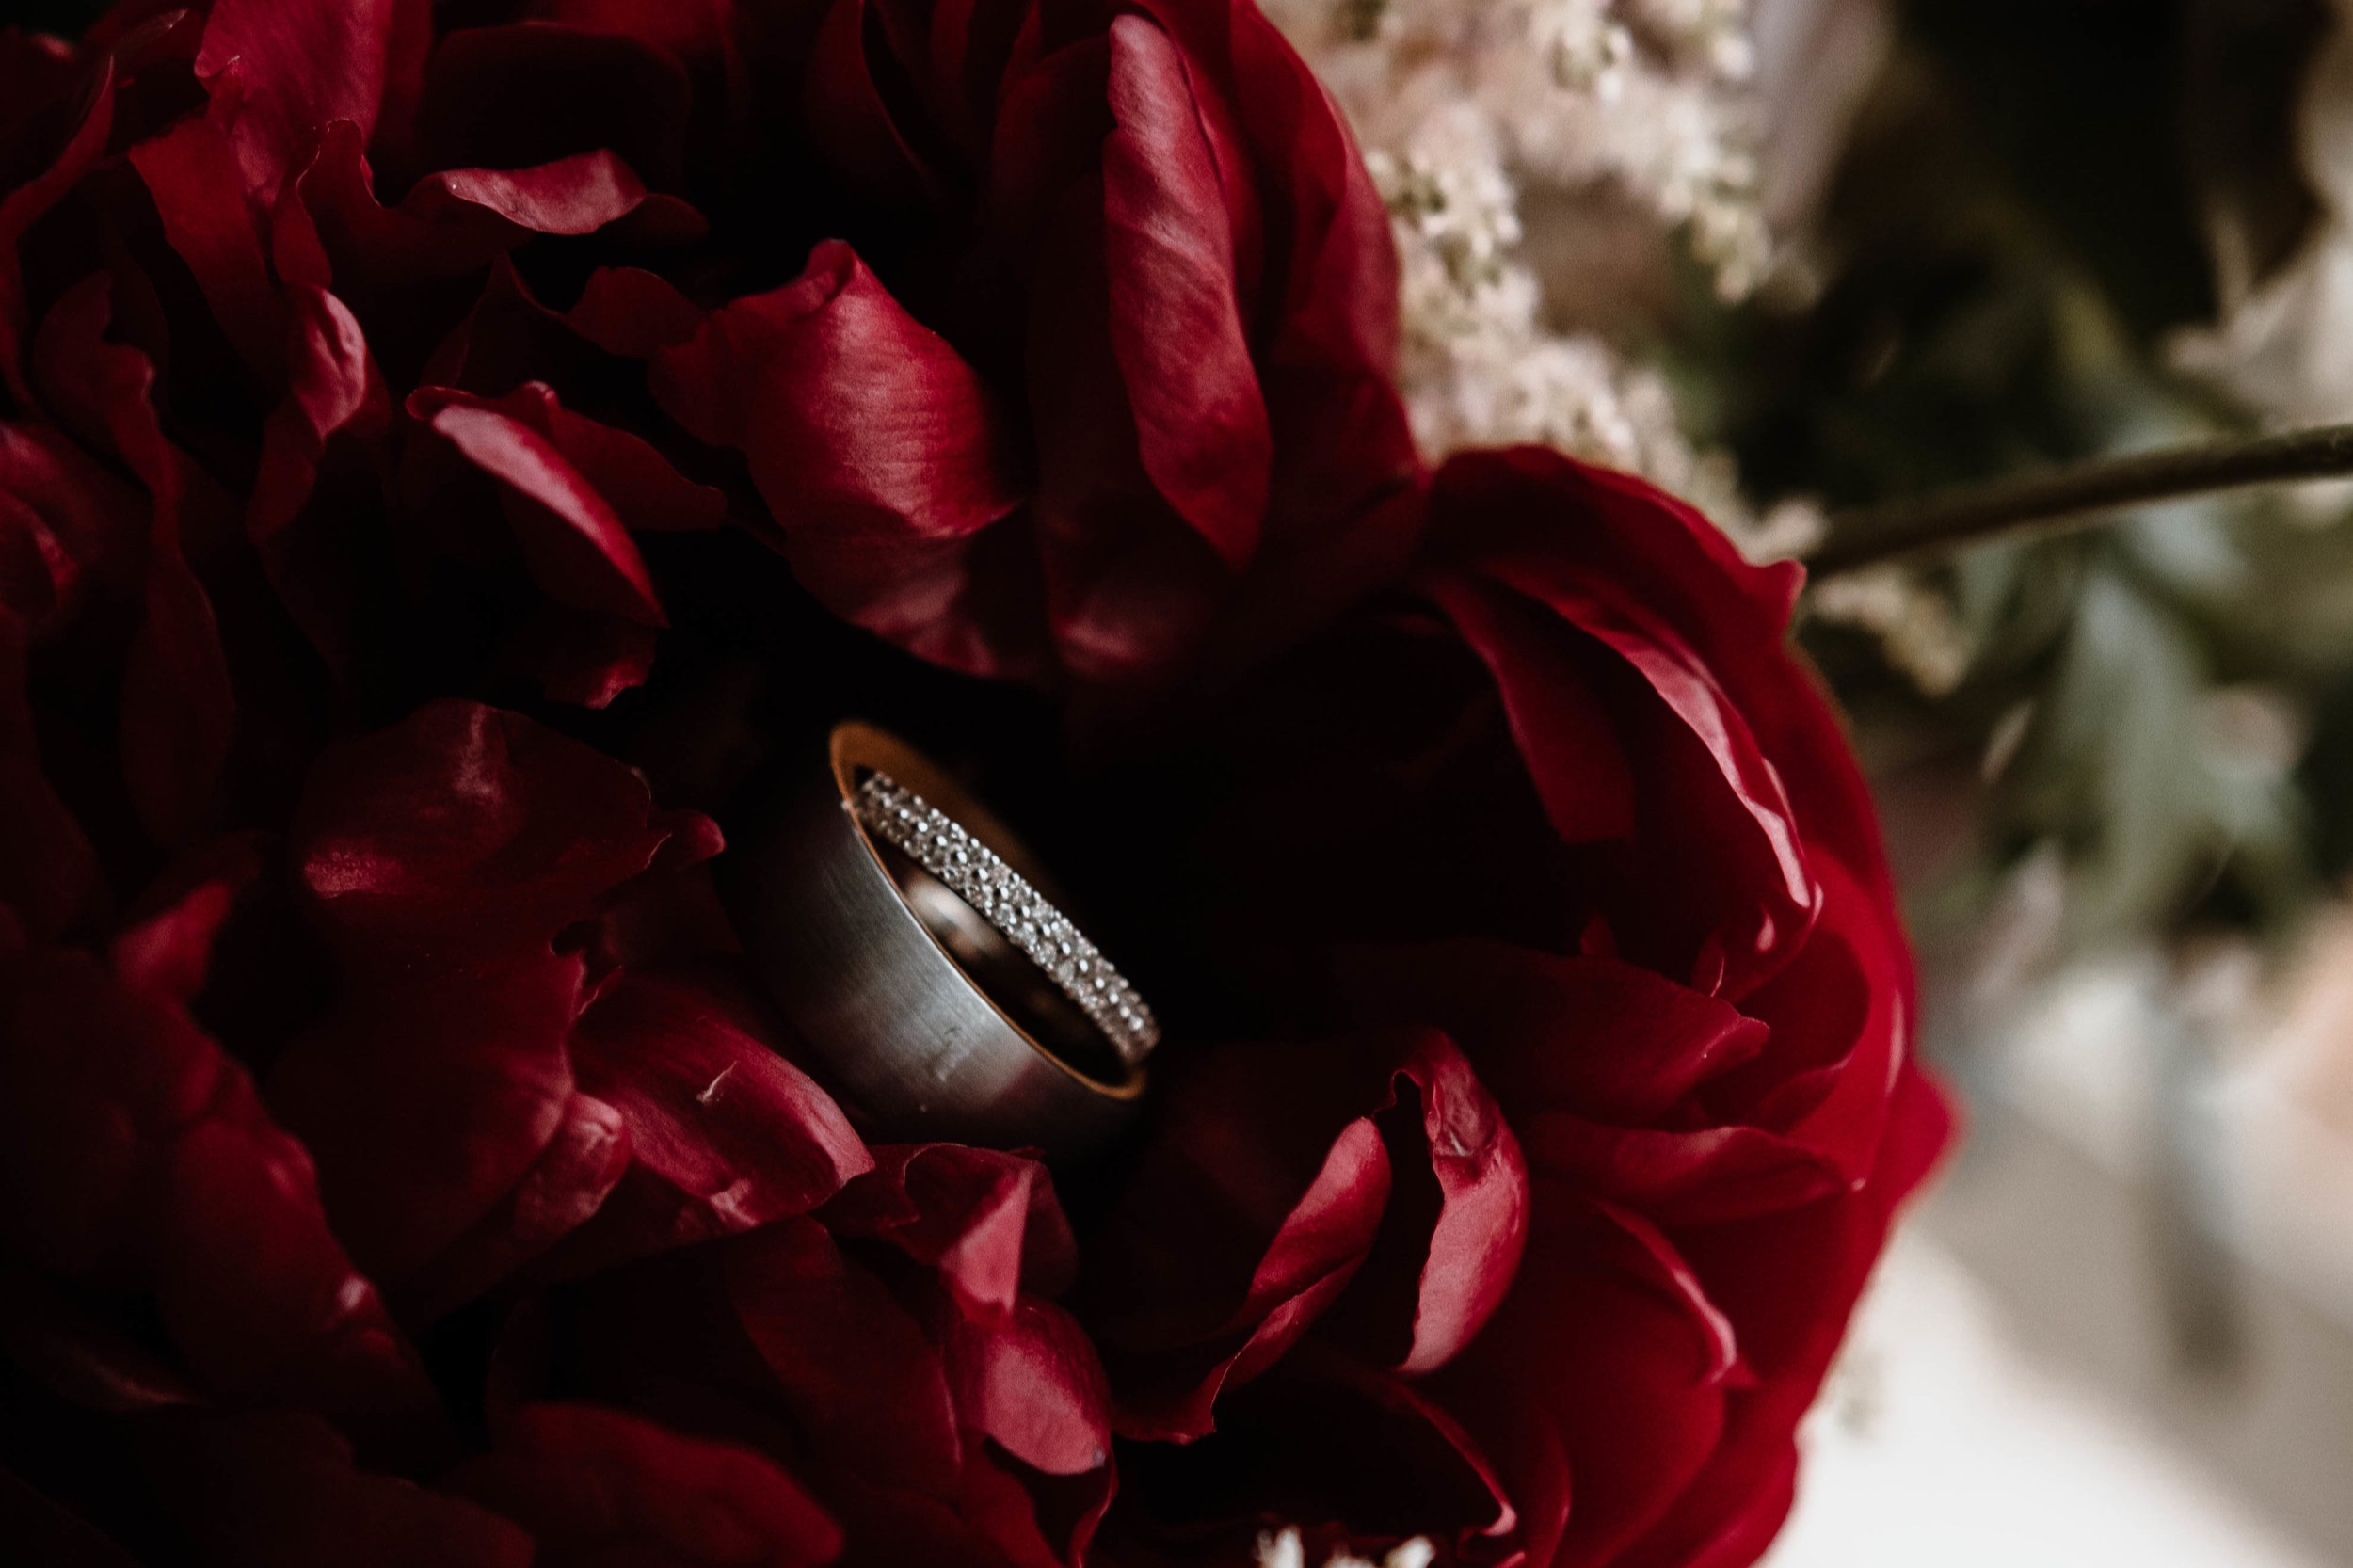 WEDDING - Wedding packages start at $1000. These packages can be tailored to your specific needs after consultation.Please email to inquire.